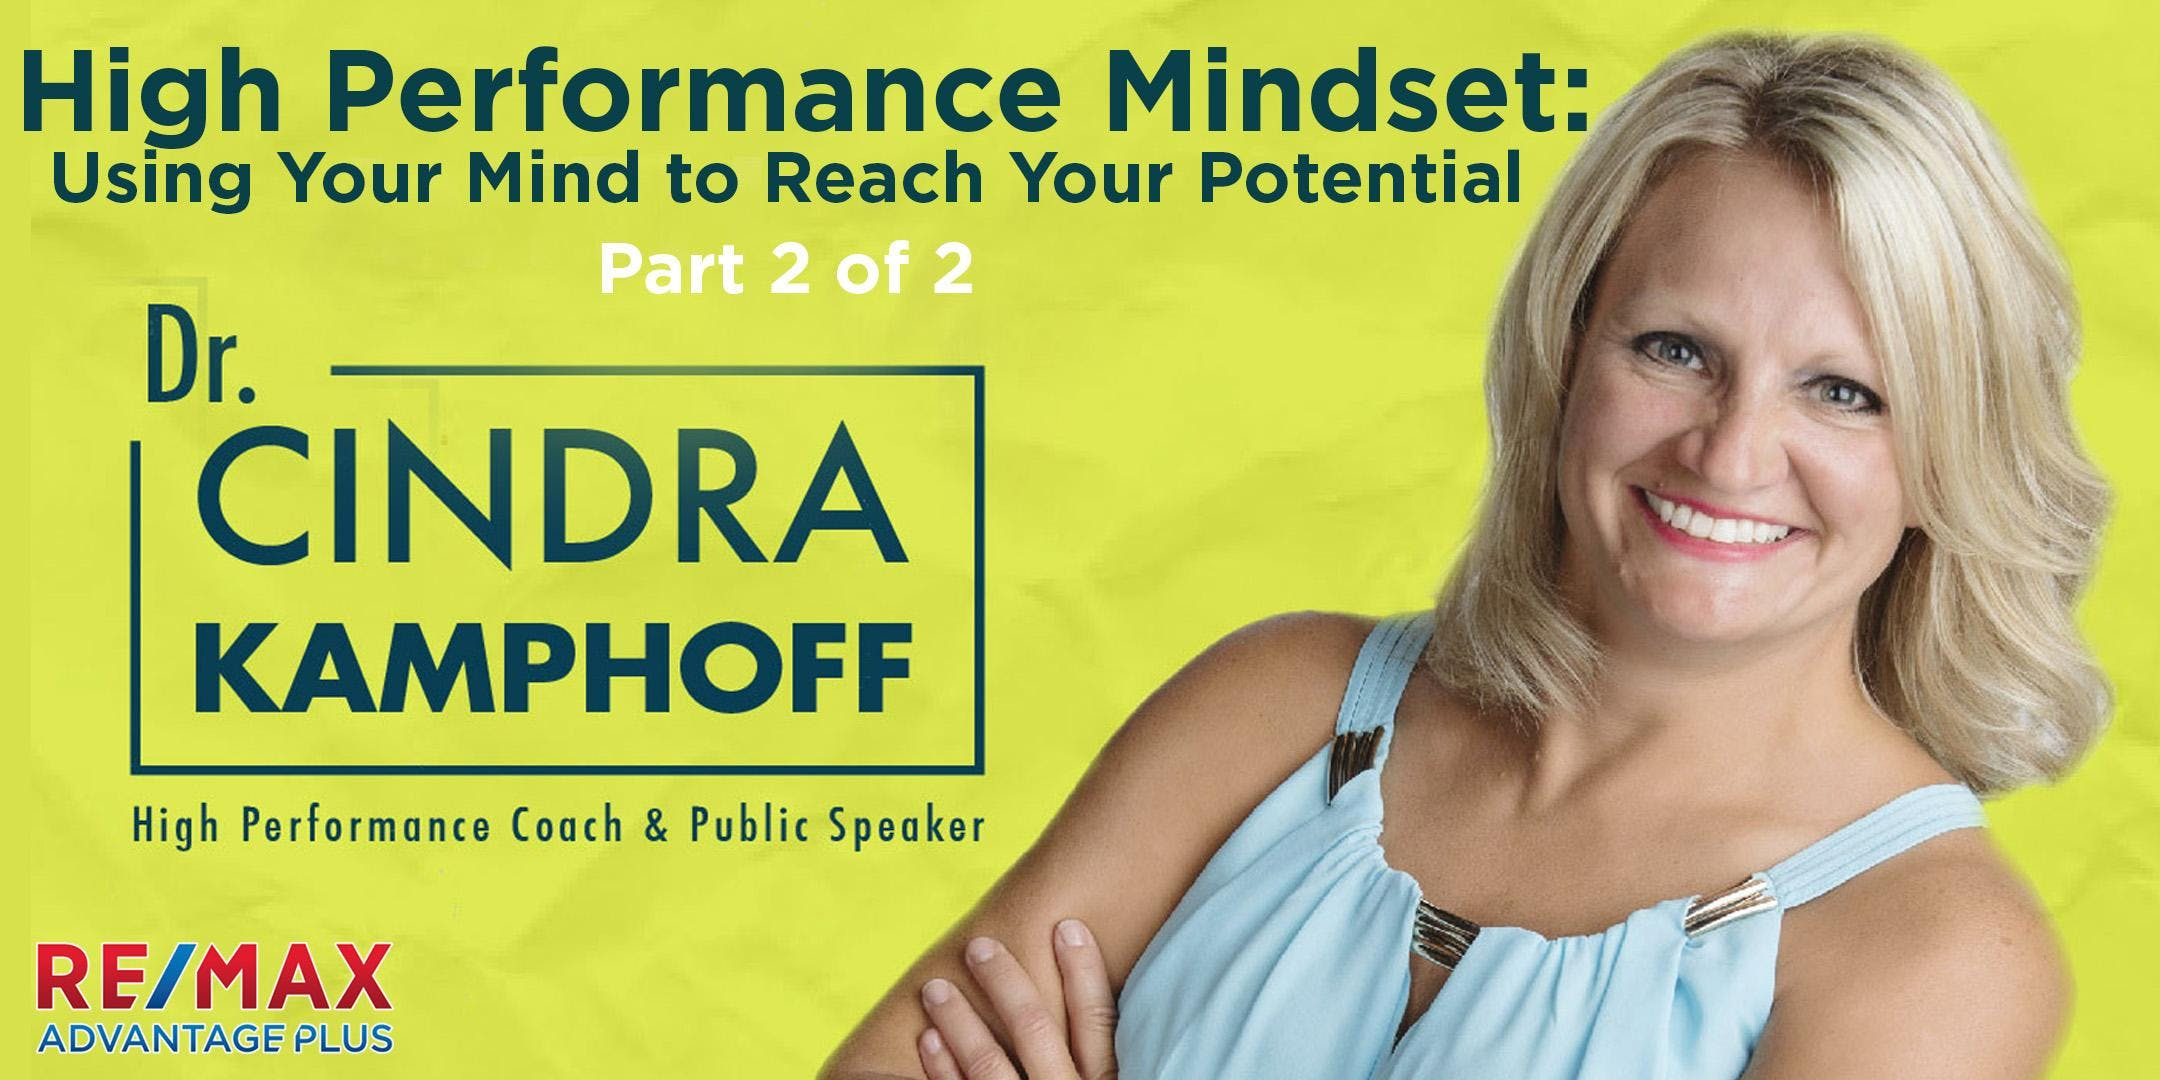 High Performance Mindset: Using Your Mind to